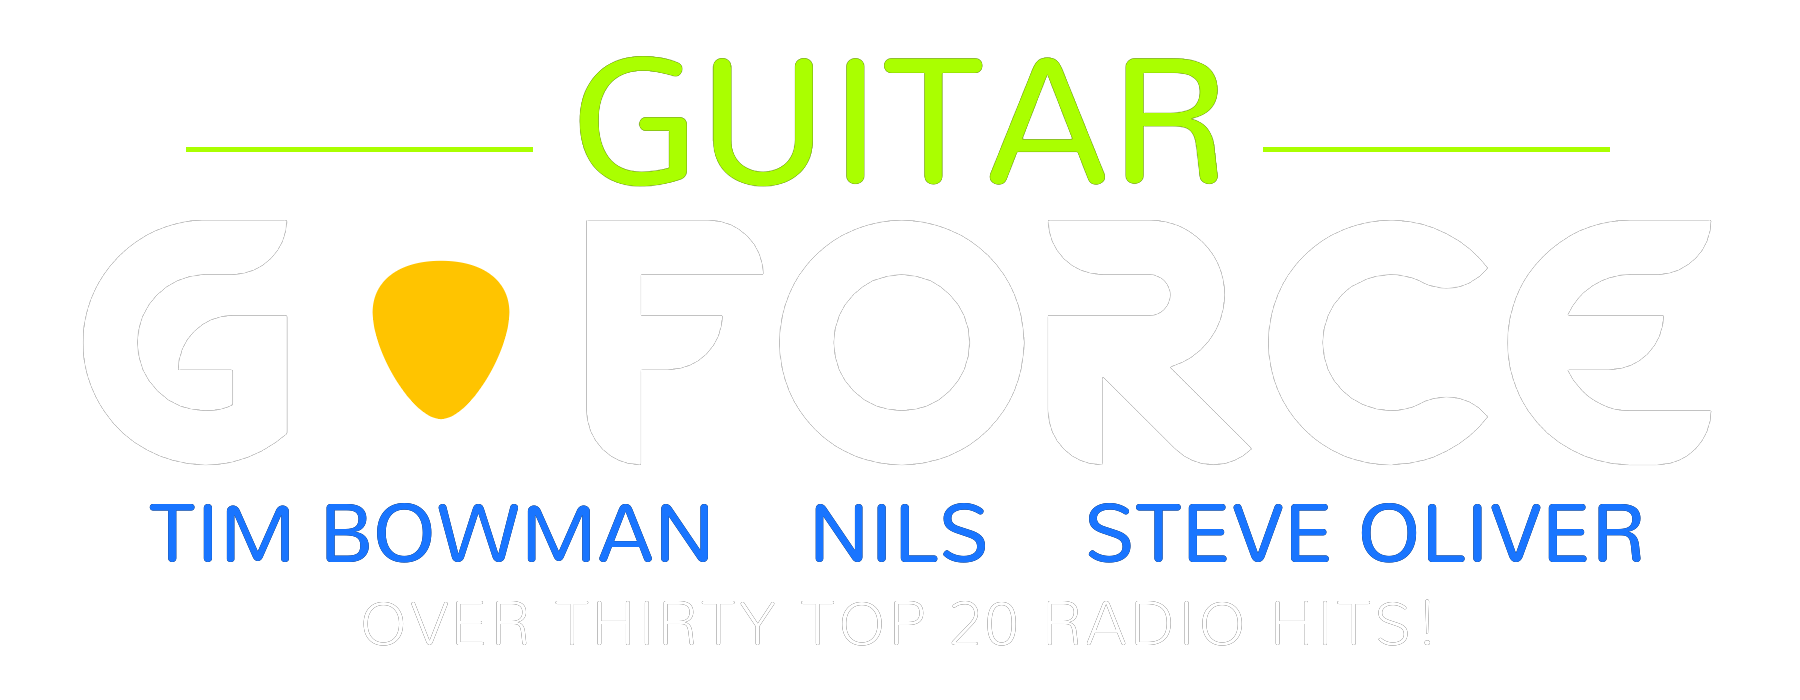 Guitar G-Force Logo Trans for Dark.png